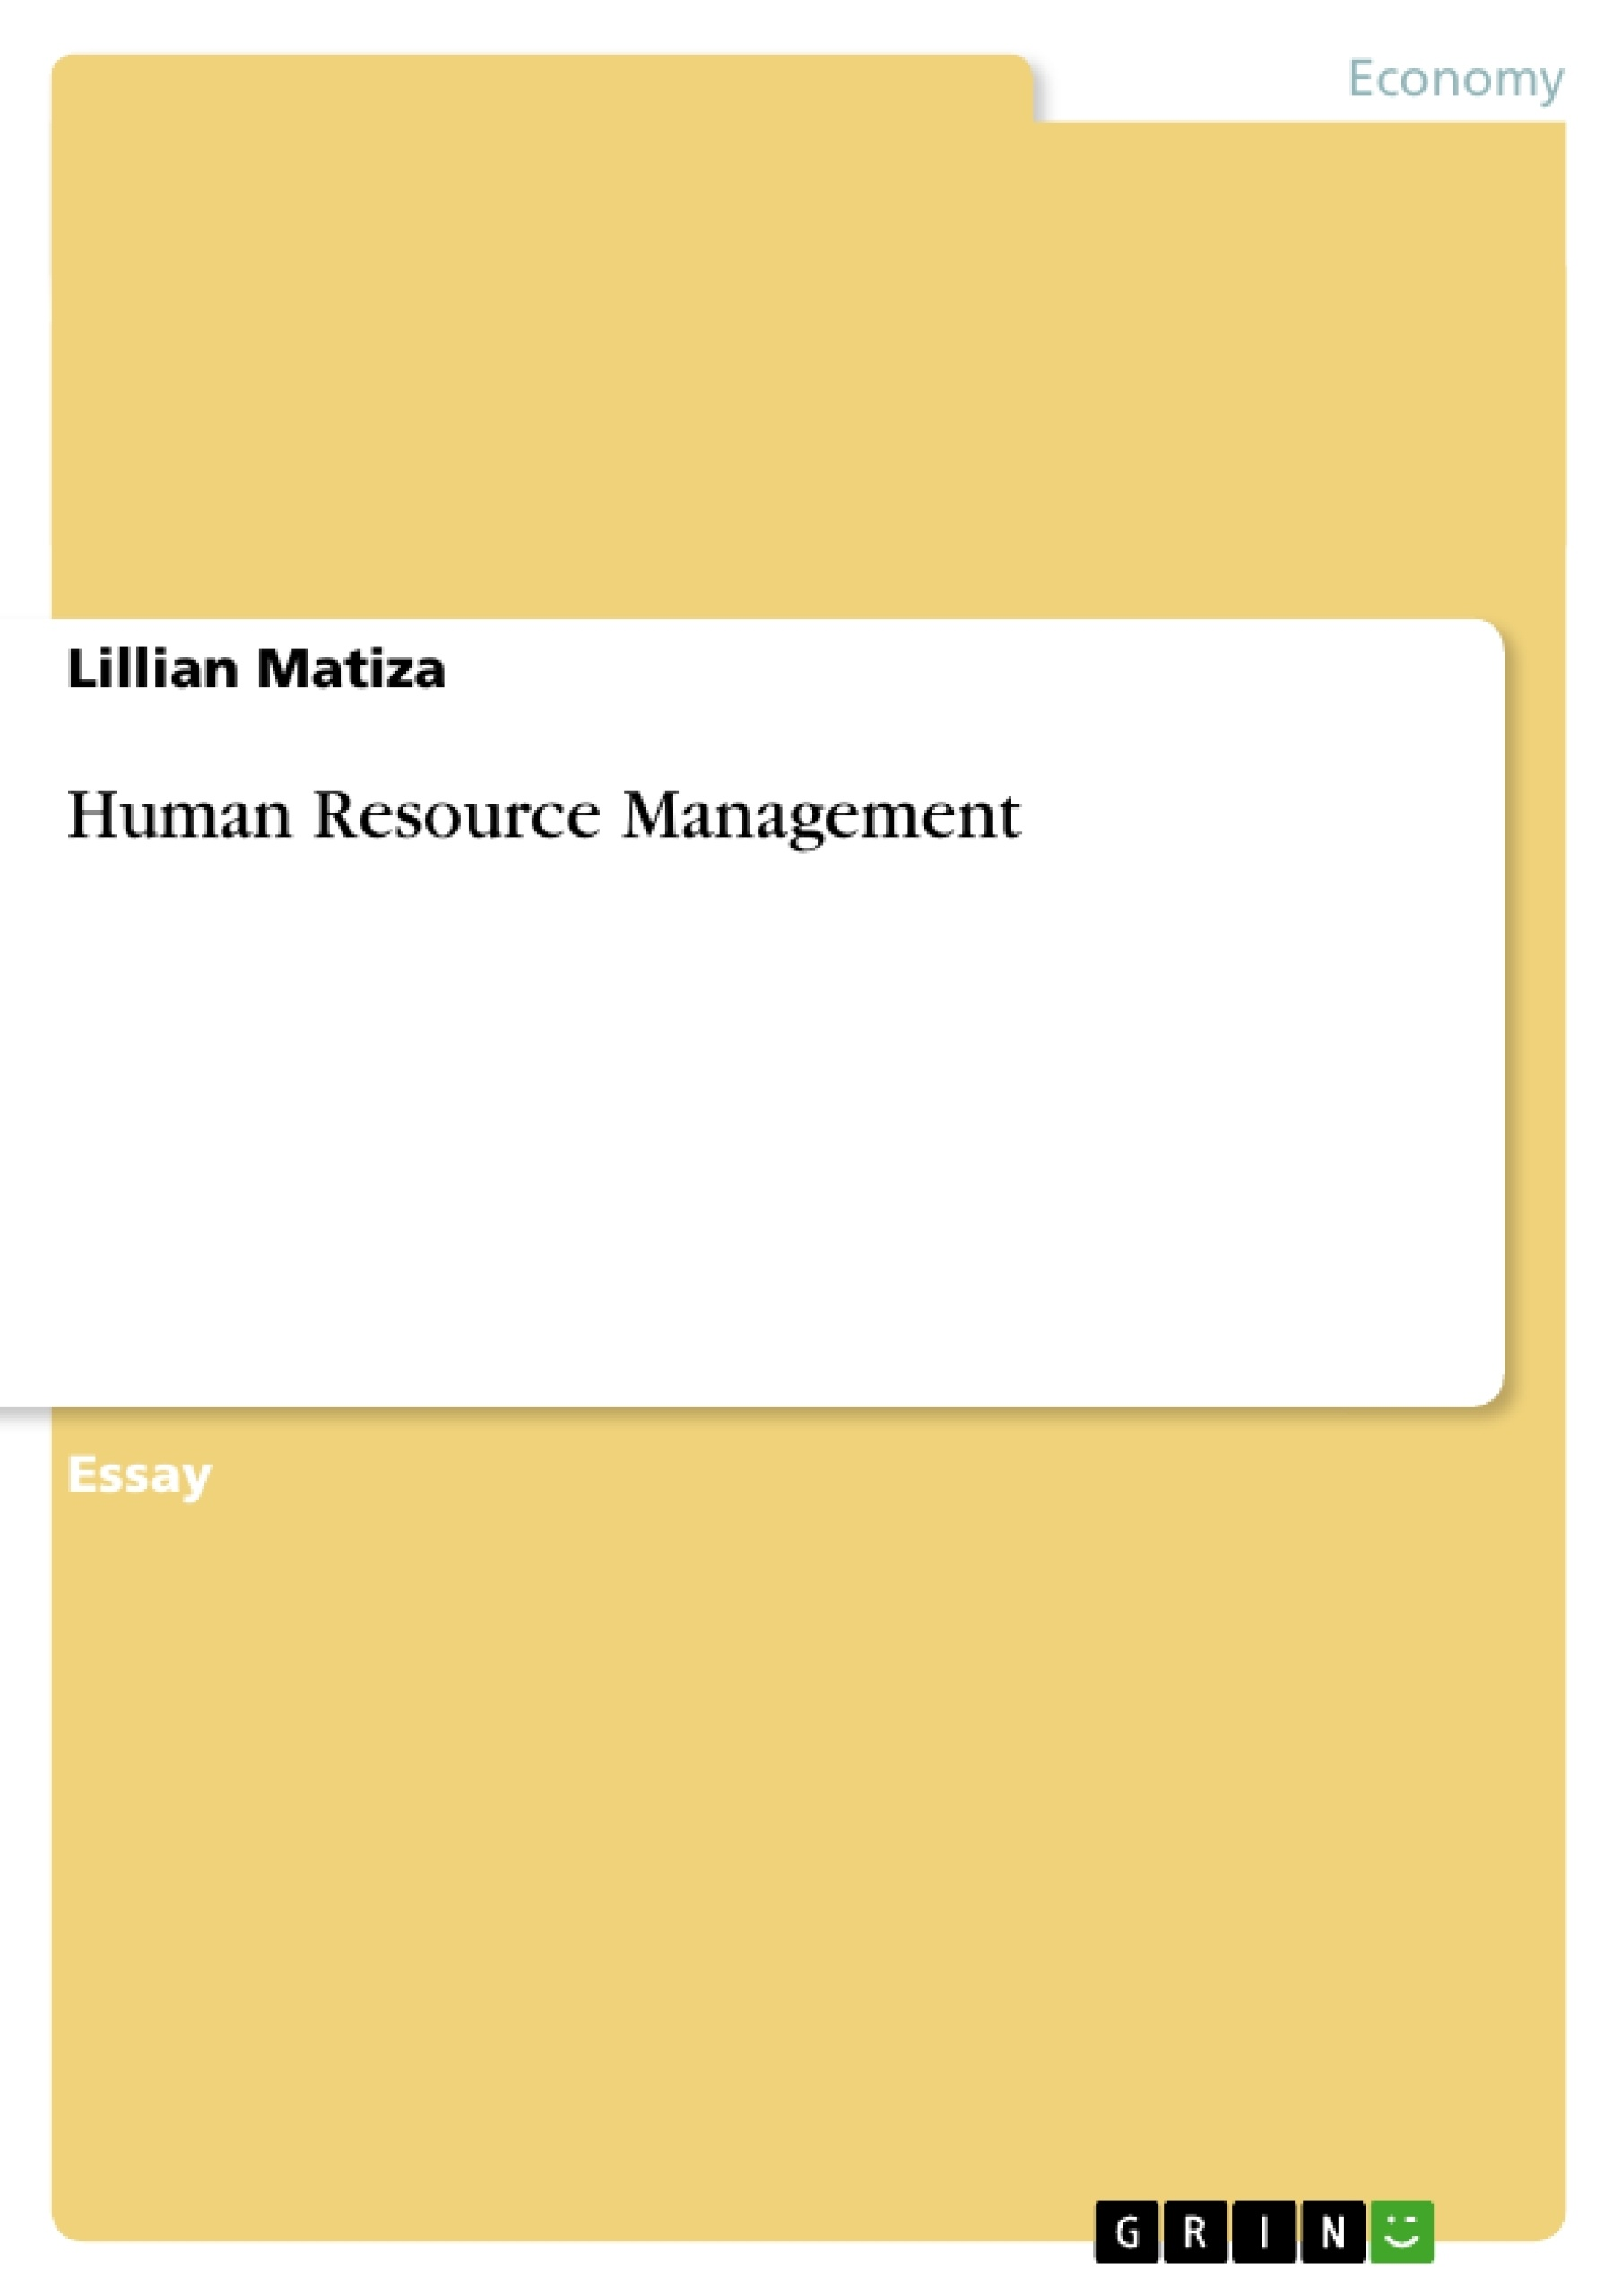 Title: Human Resource Management